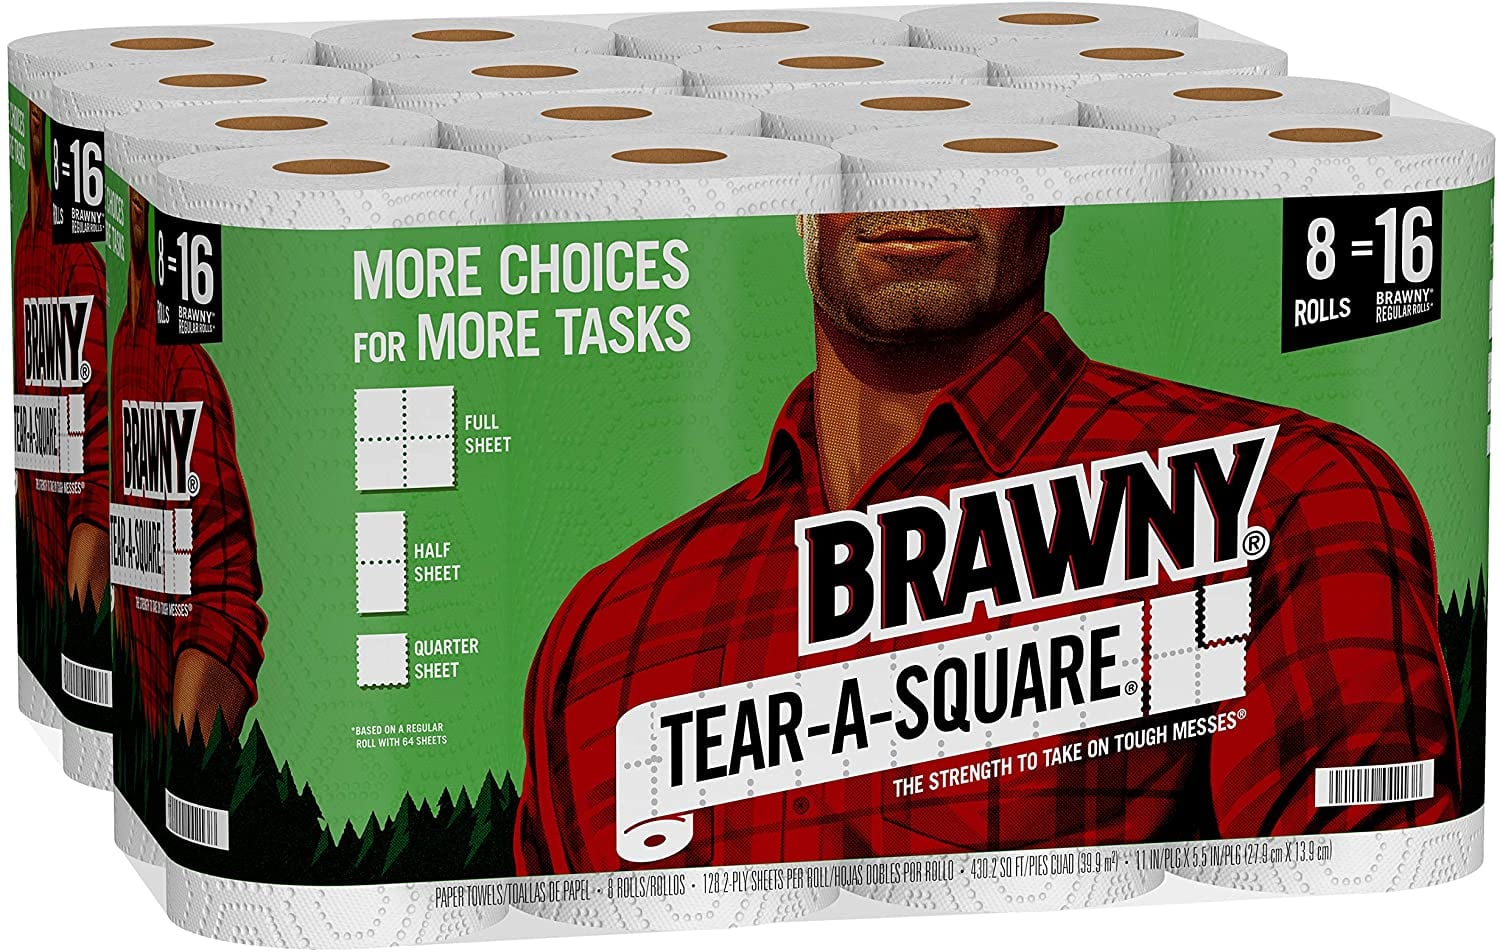 Ymmv Amazon.com: Brawny Tear-A-Square Paper Towels, 16 Double Rolls = 32 Regular Rolls, 3 Sheet Size Options, Quarter Size Sheets: Health & Personal Care $20.84